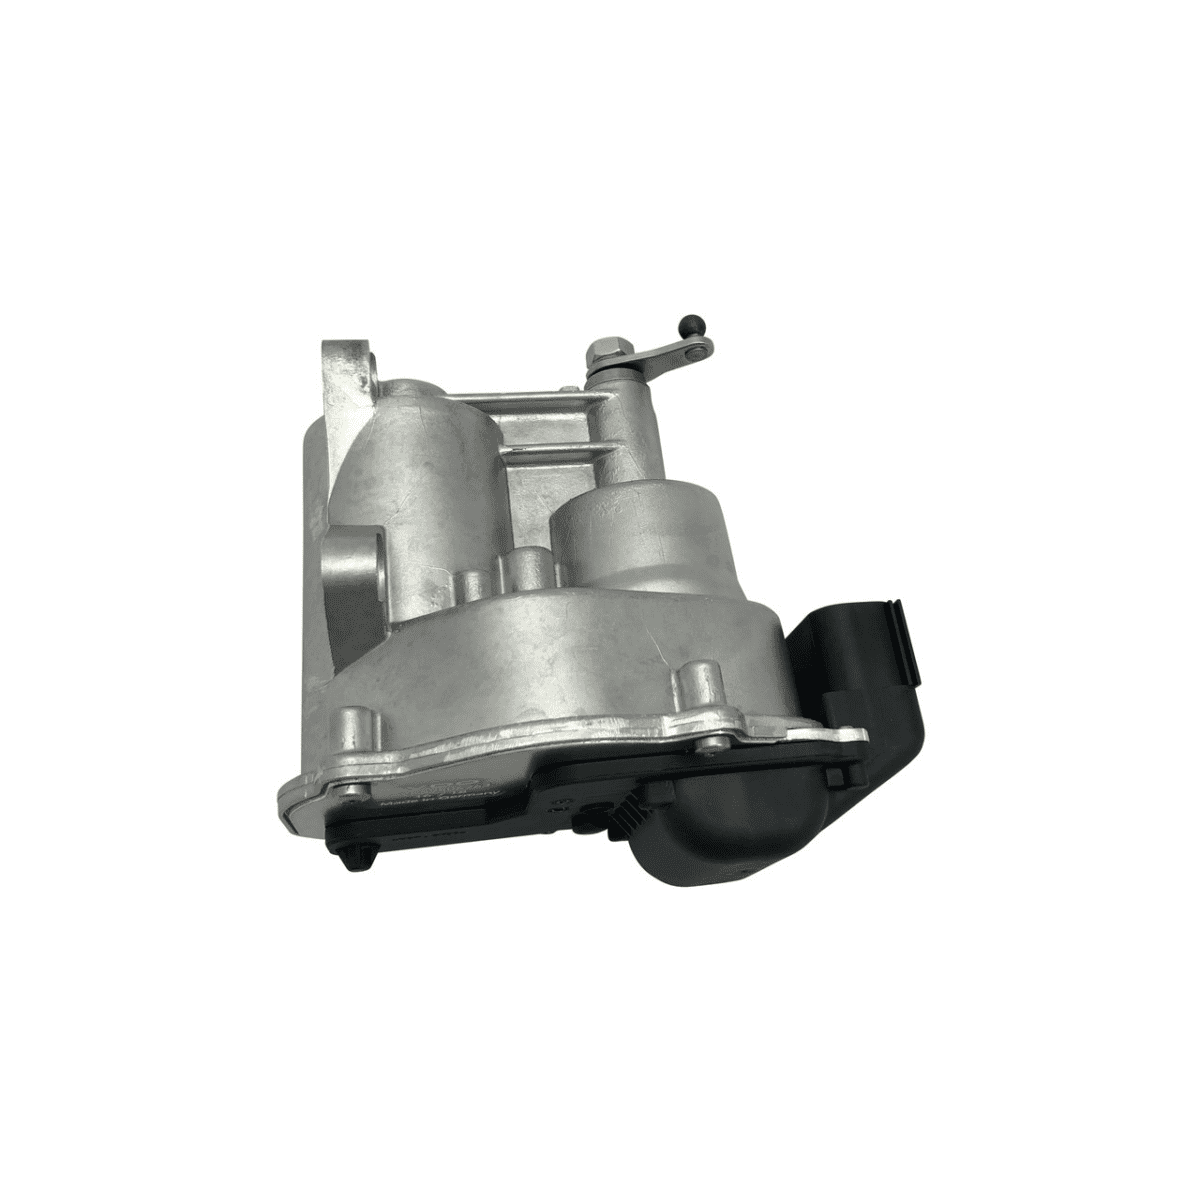 Throttle valve actuator